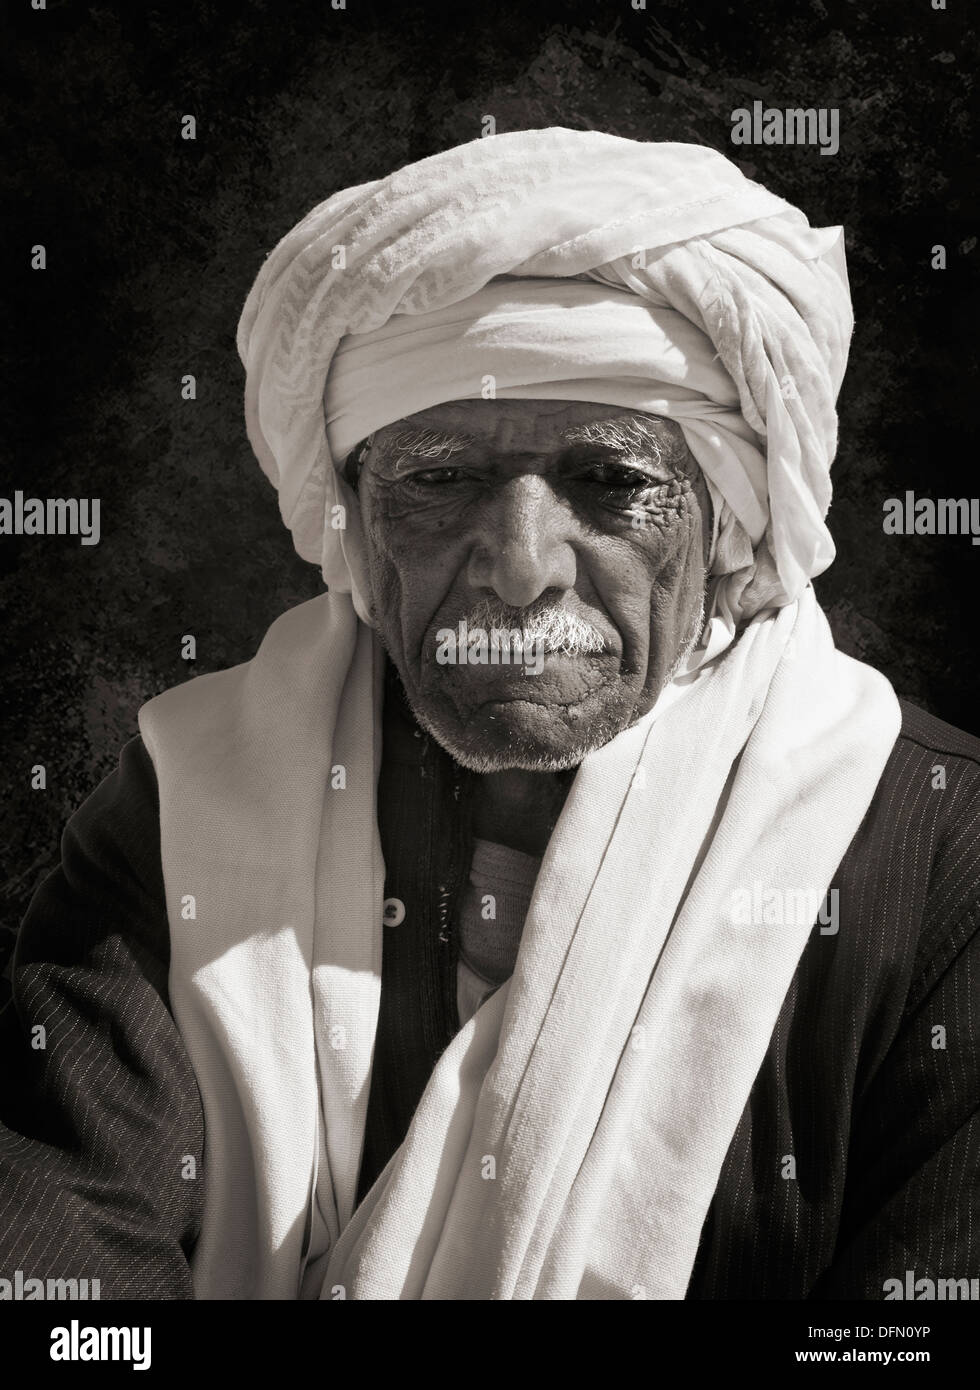 Monochrome portrait of an elderly Egyptian Arab man. - Stock Image